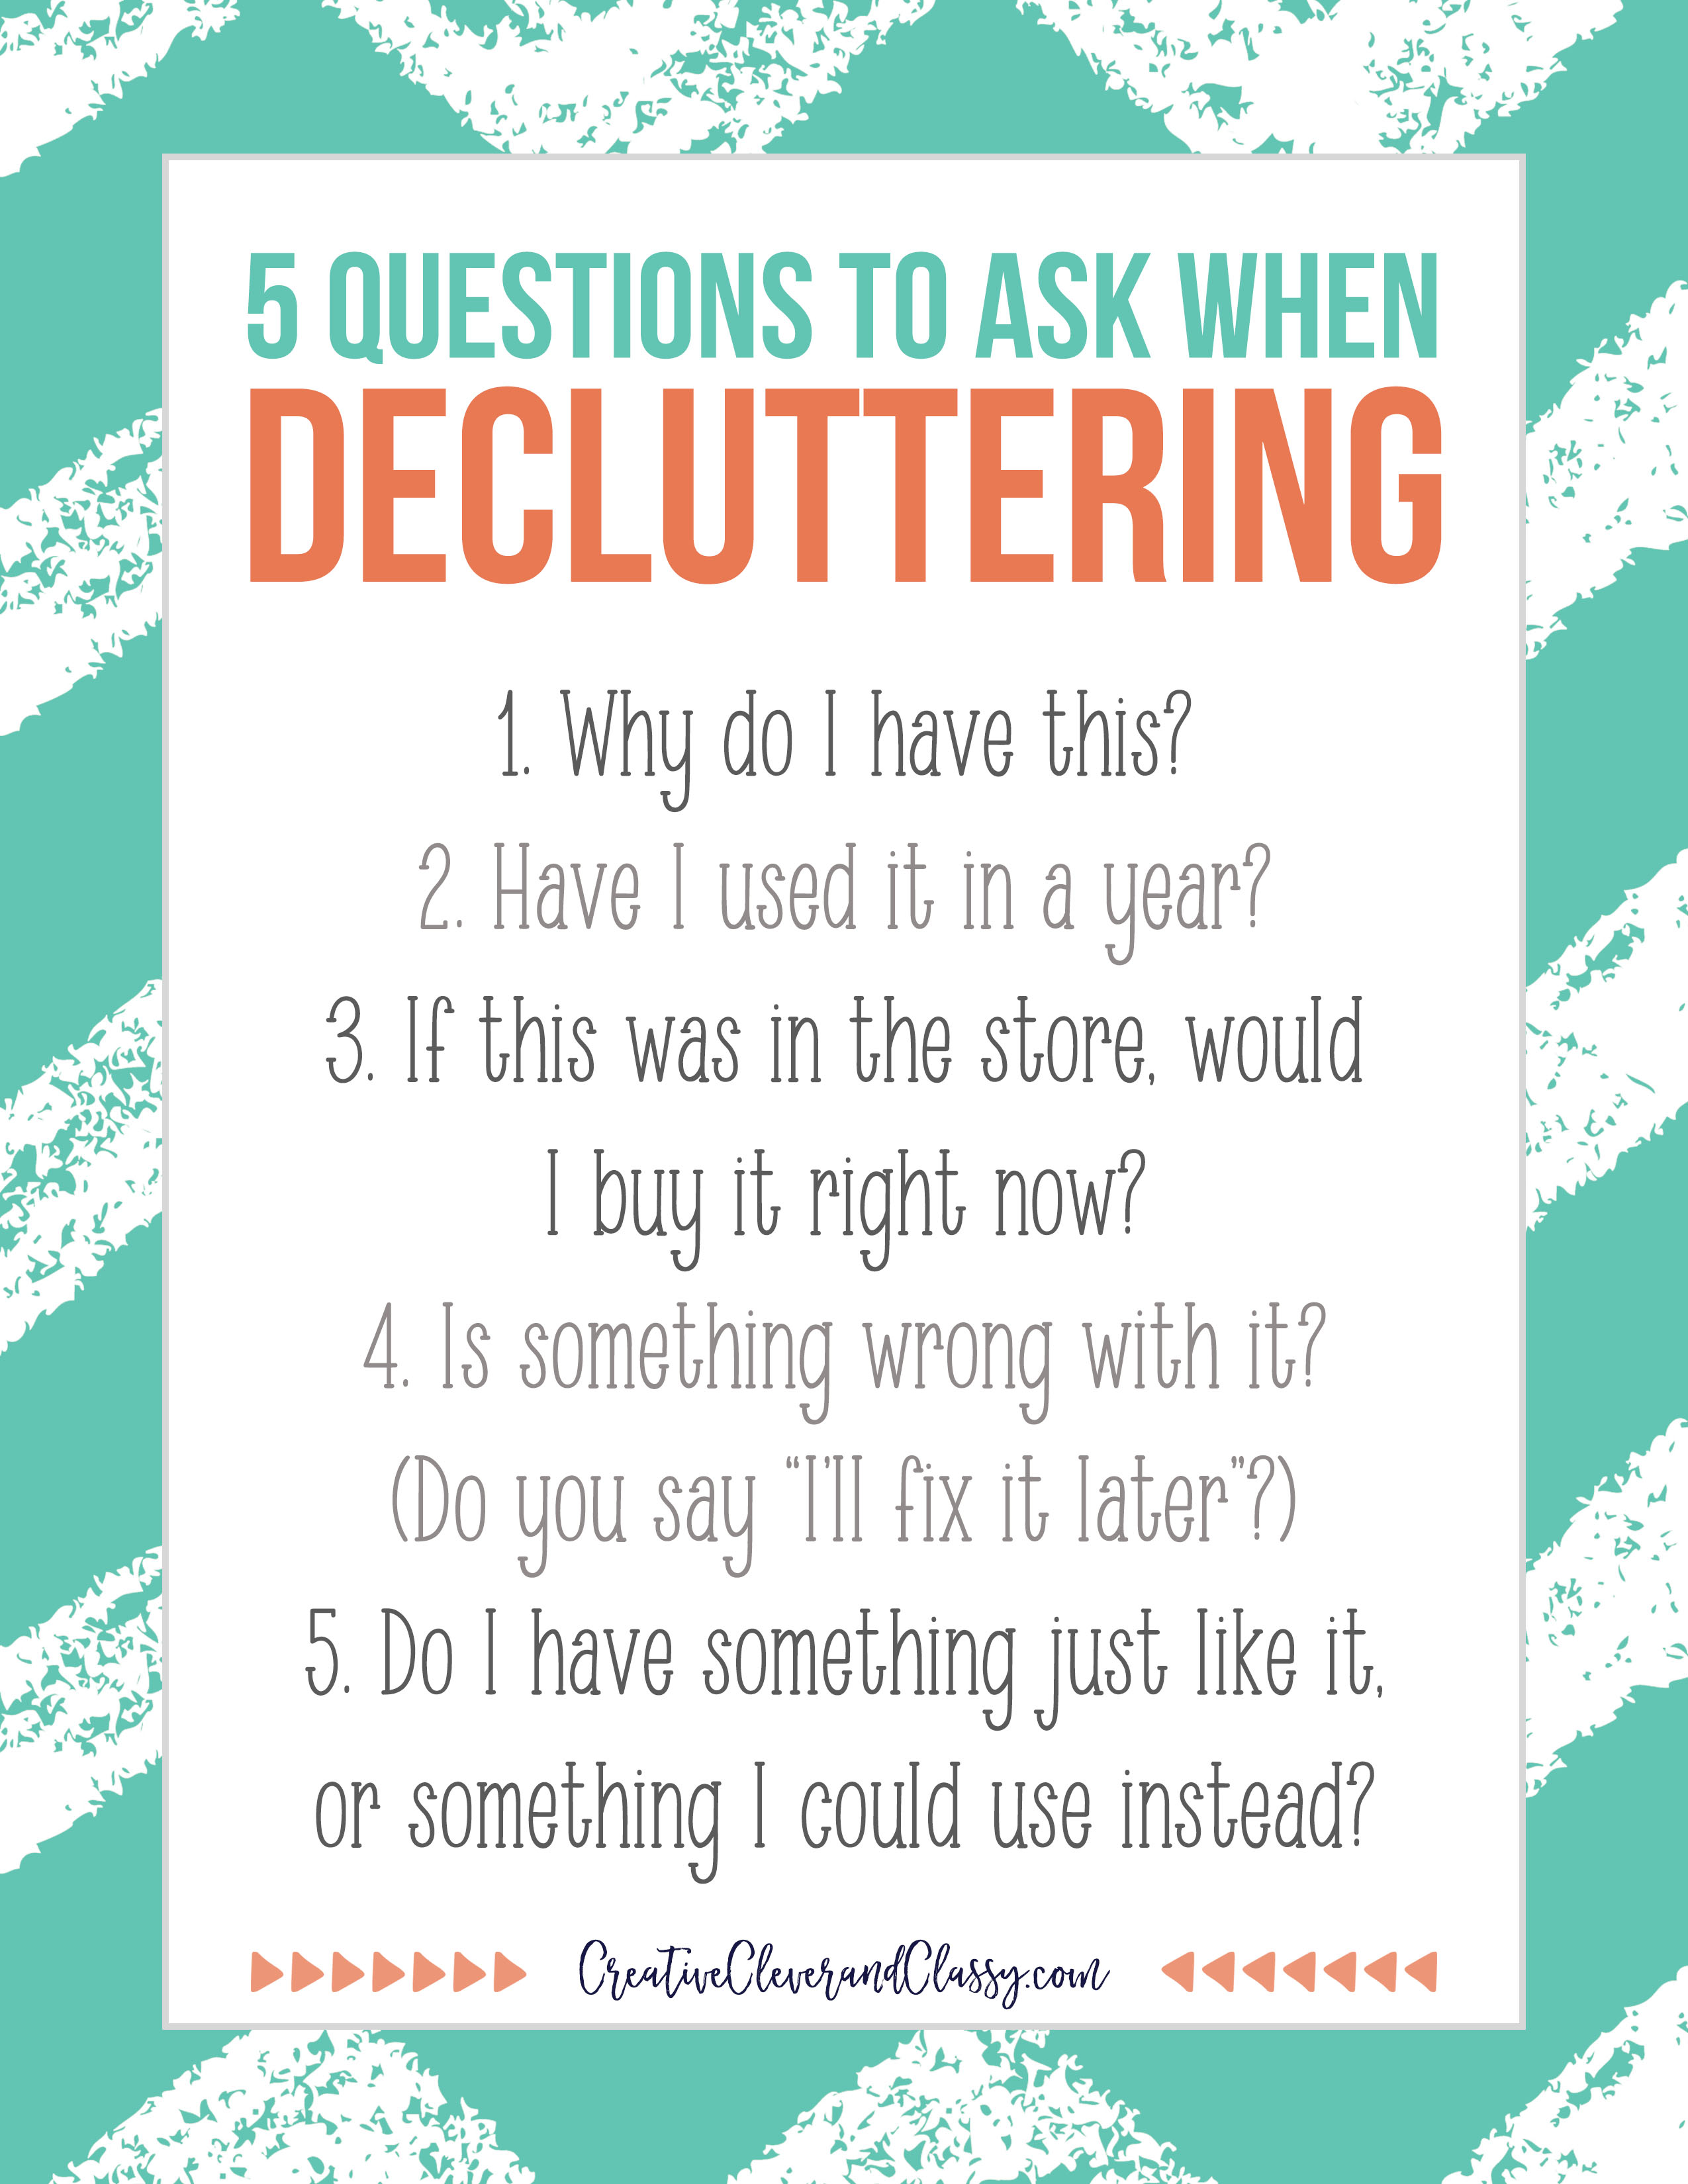 With Christmas coming up, it can be easy to accumulate a lot of stuff. Here are five easy questions you can ask yourself when you're decluttering.